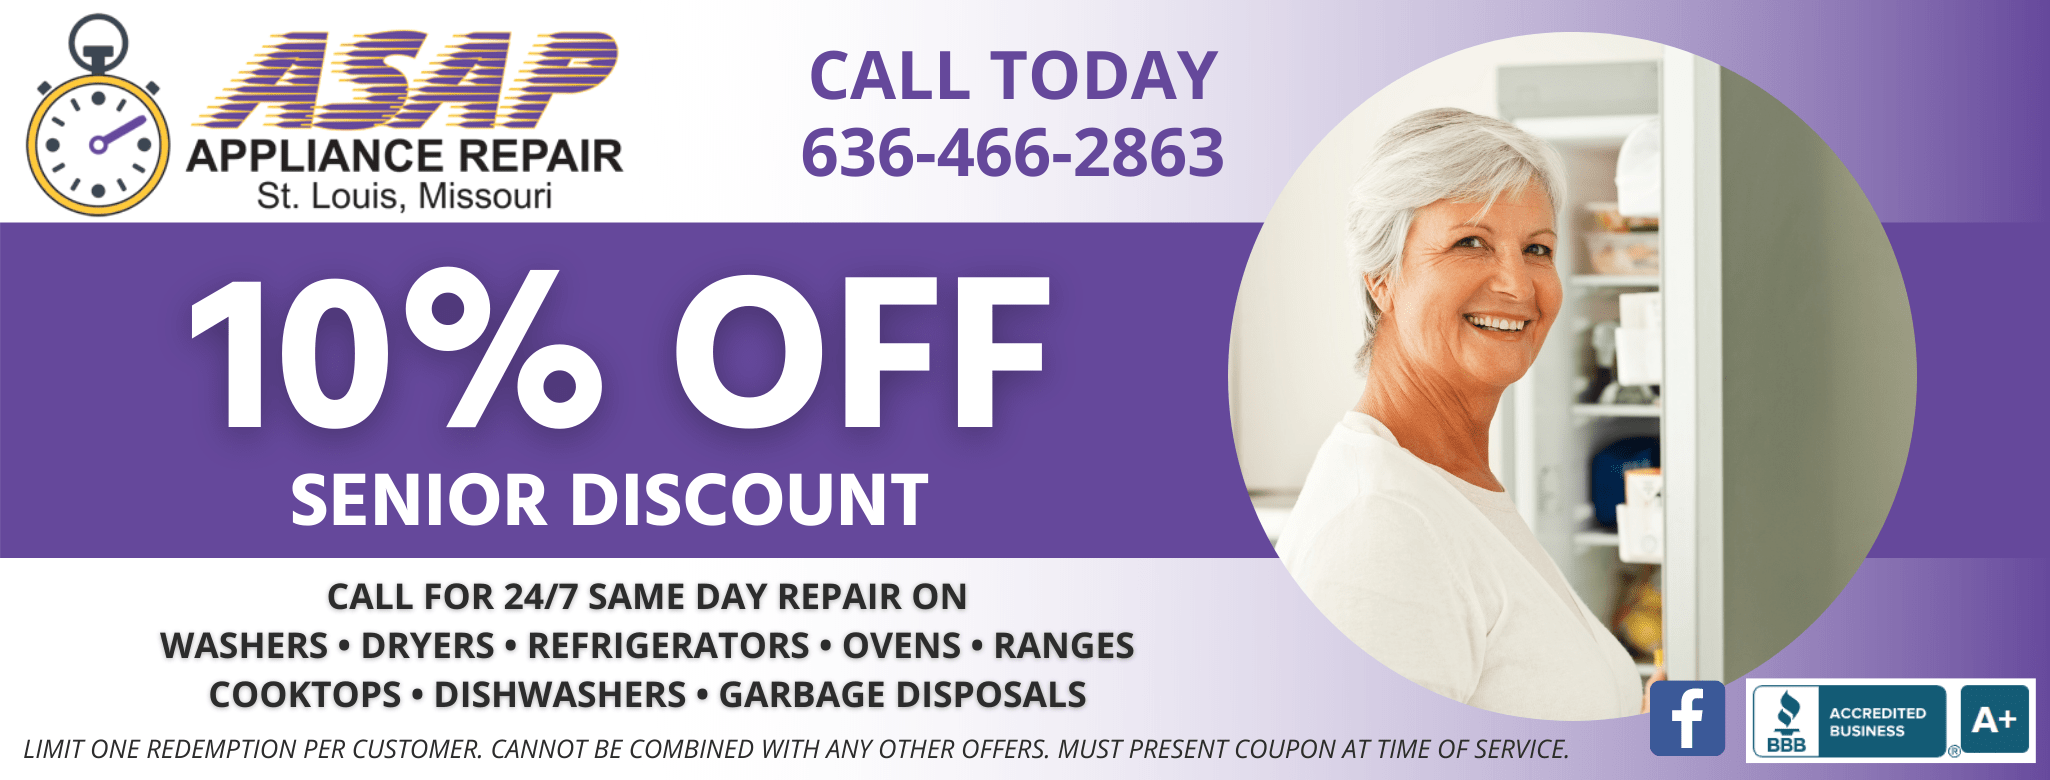 ASAP Appliance Repair 10% Senior Discount on Appliance Repair